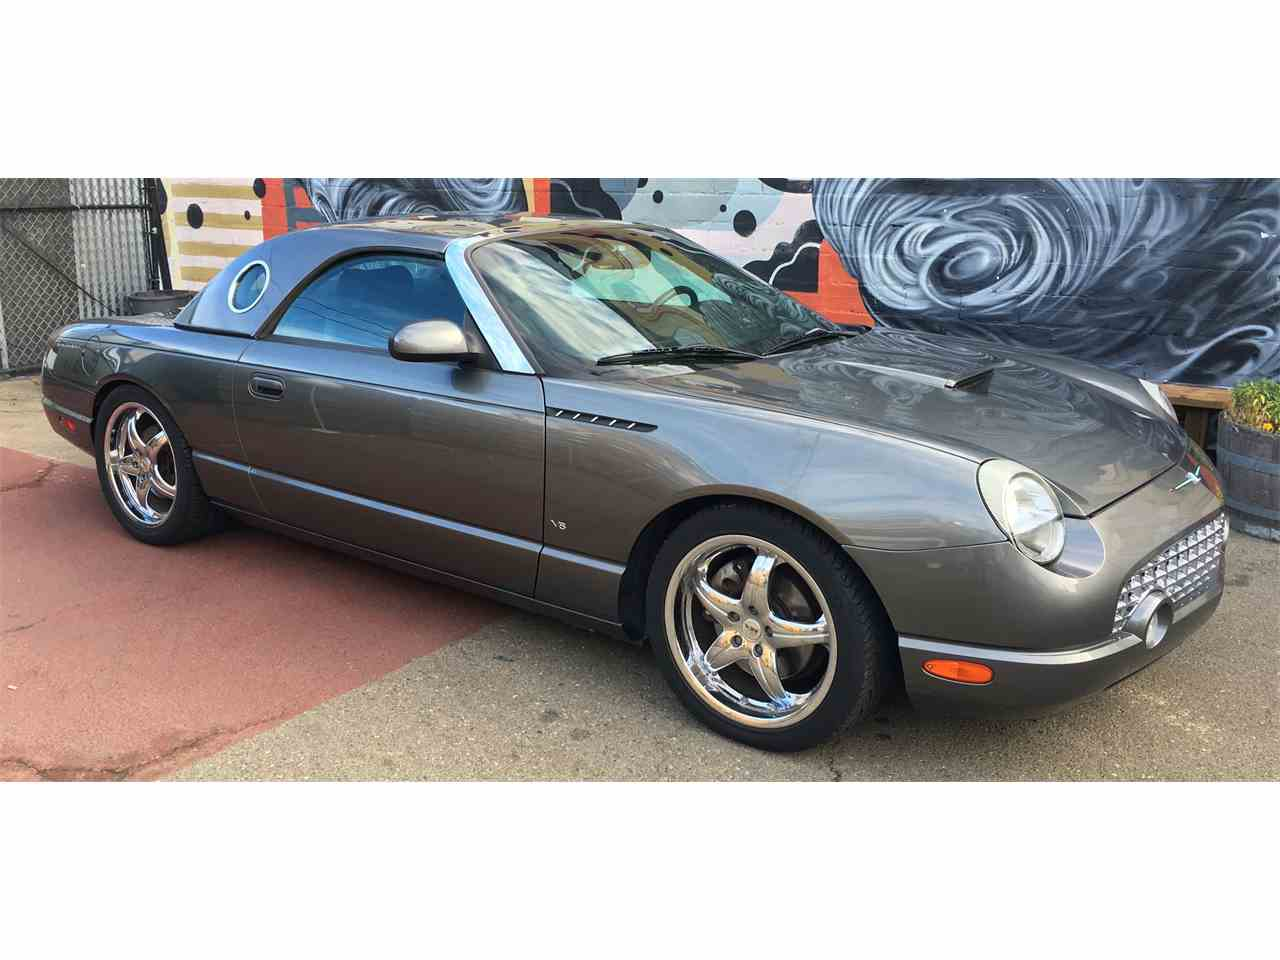 Large Picture of 2003 Ford Thunderbird located in California - $16,900.00 Offered by Classic Cars West - MBYF